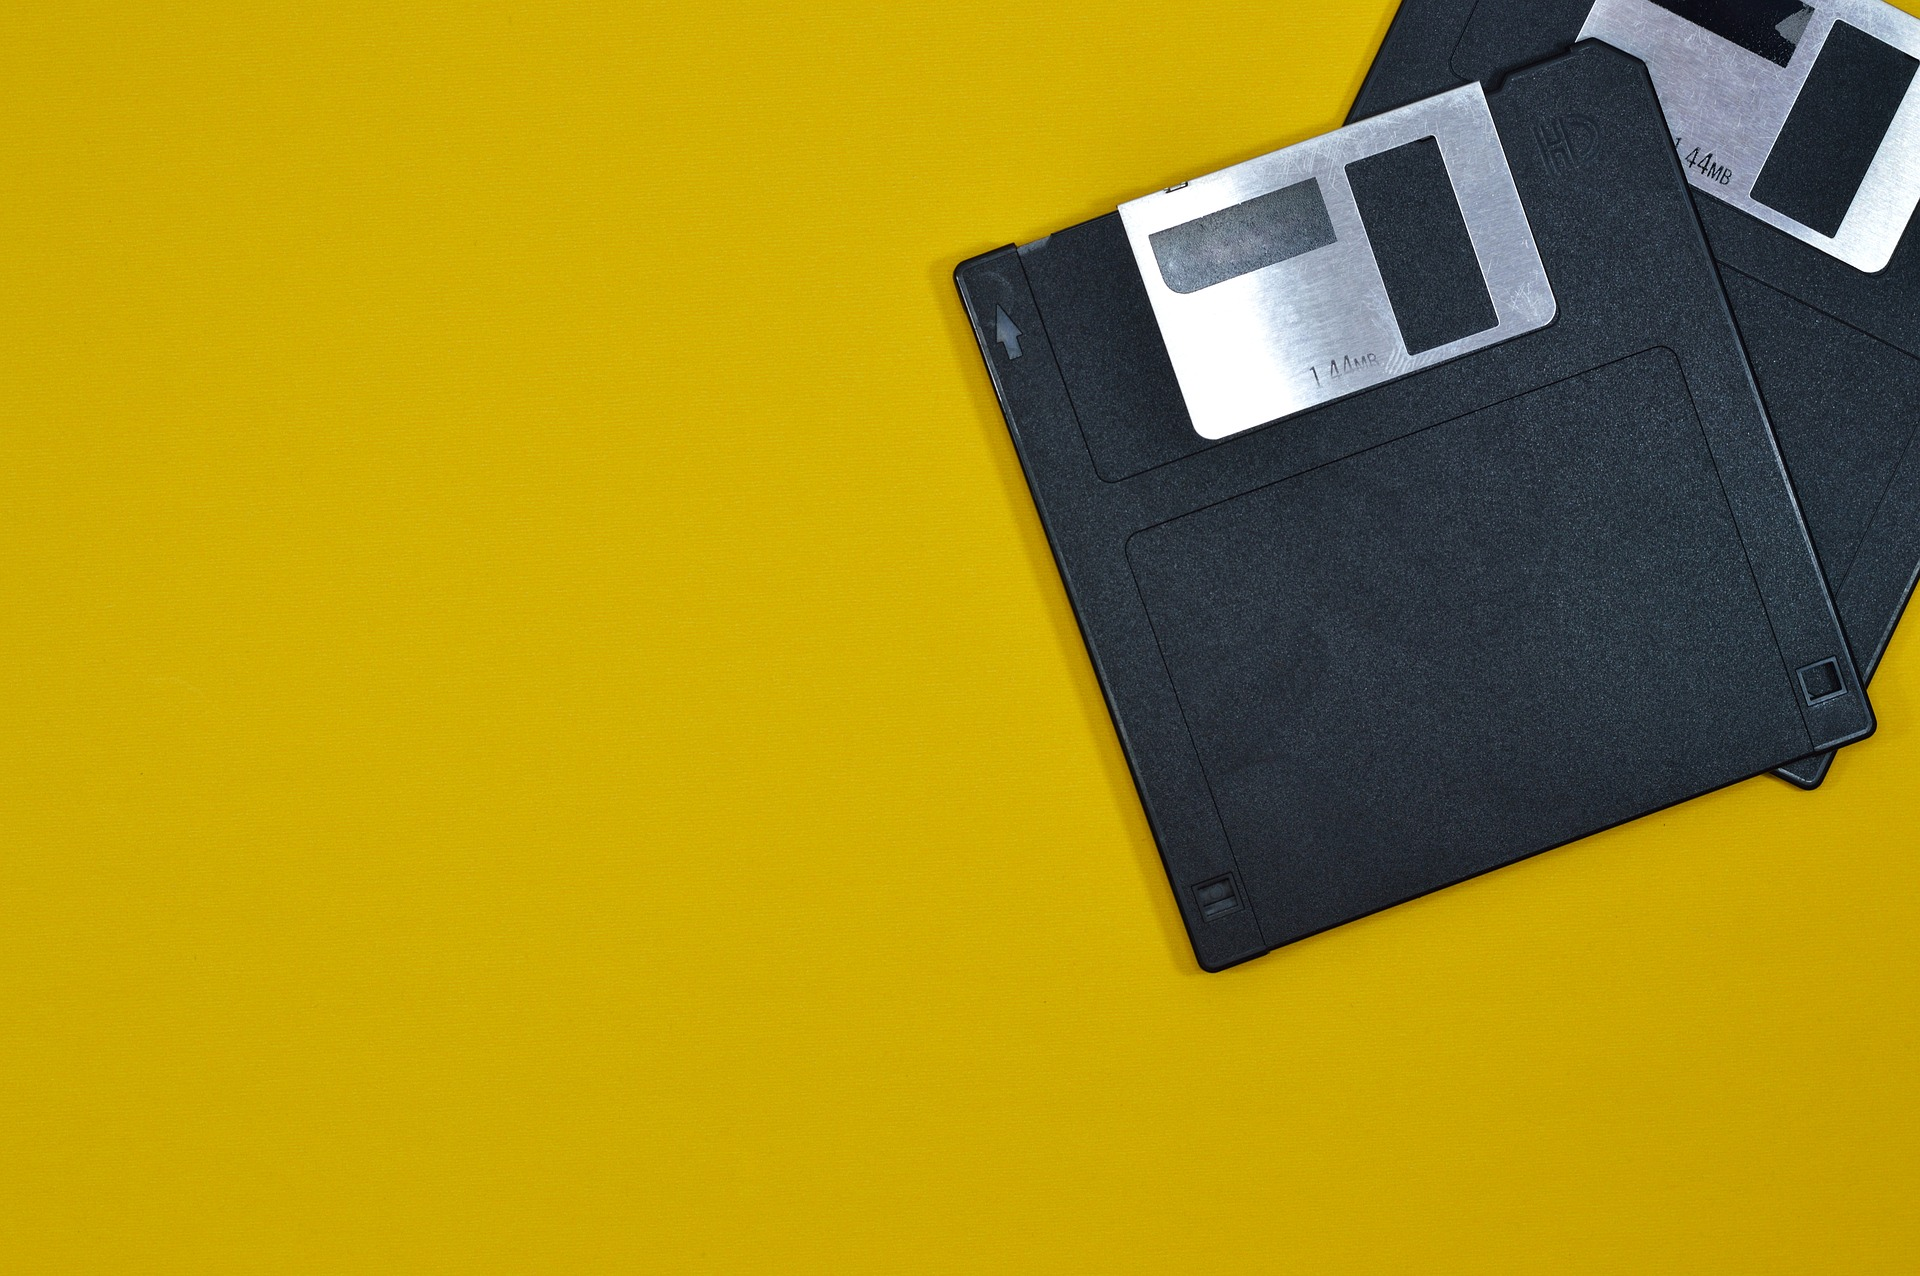 What is the Floppy Disk